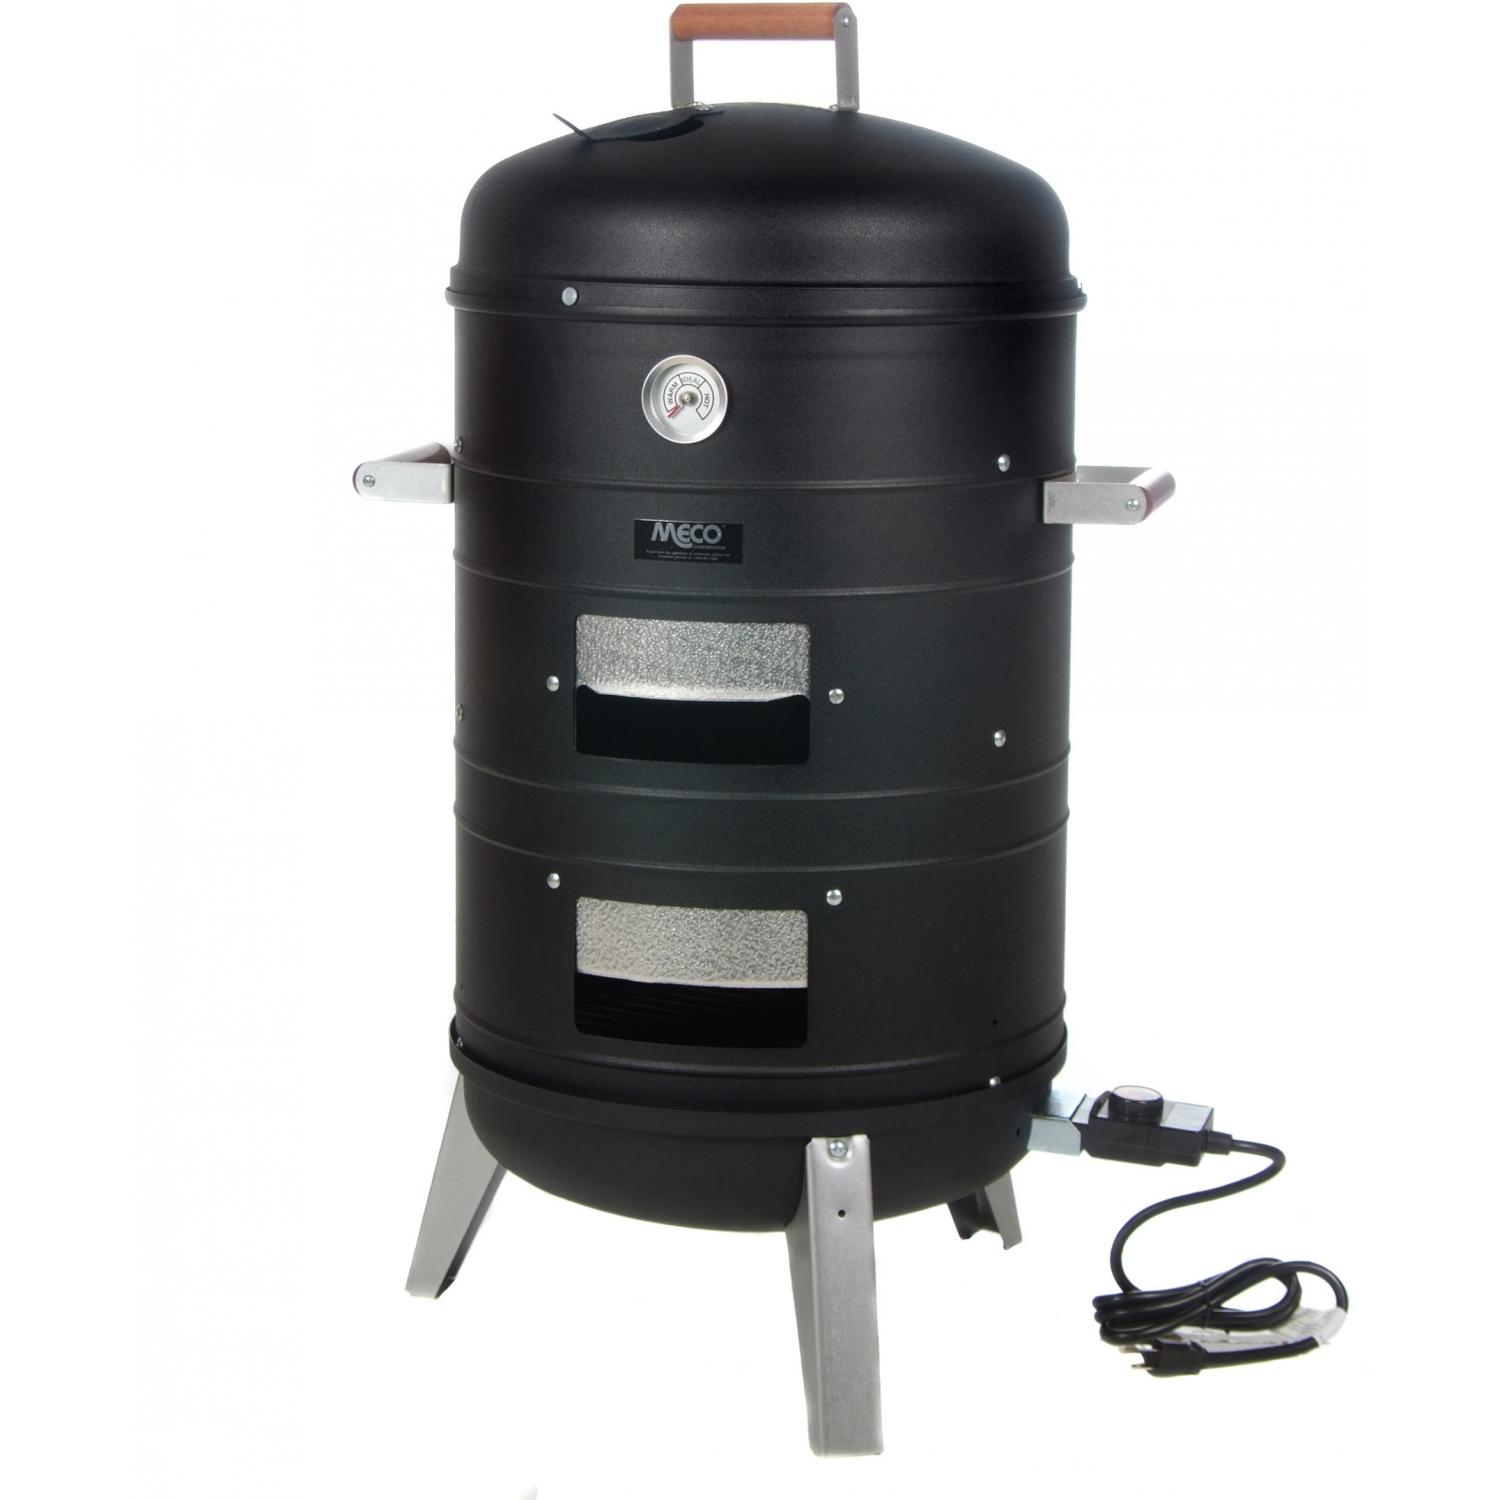 Meco Smokers - 5030 Electric Smoker And Grill - Black